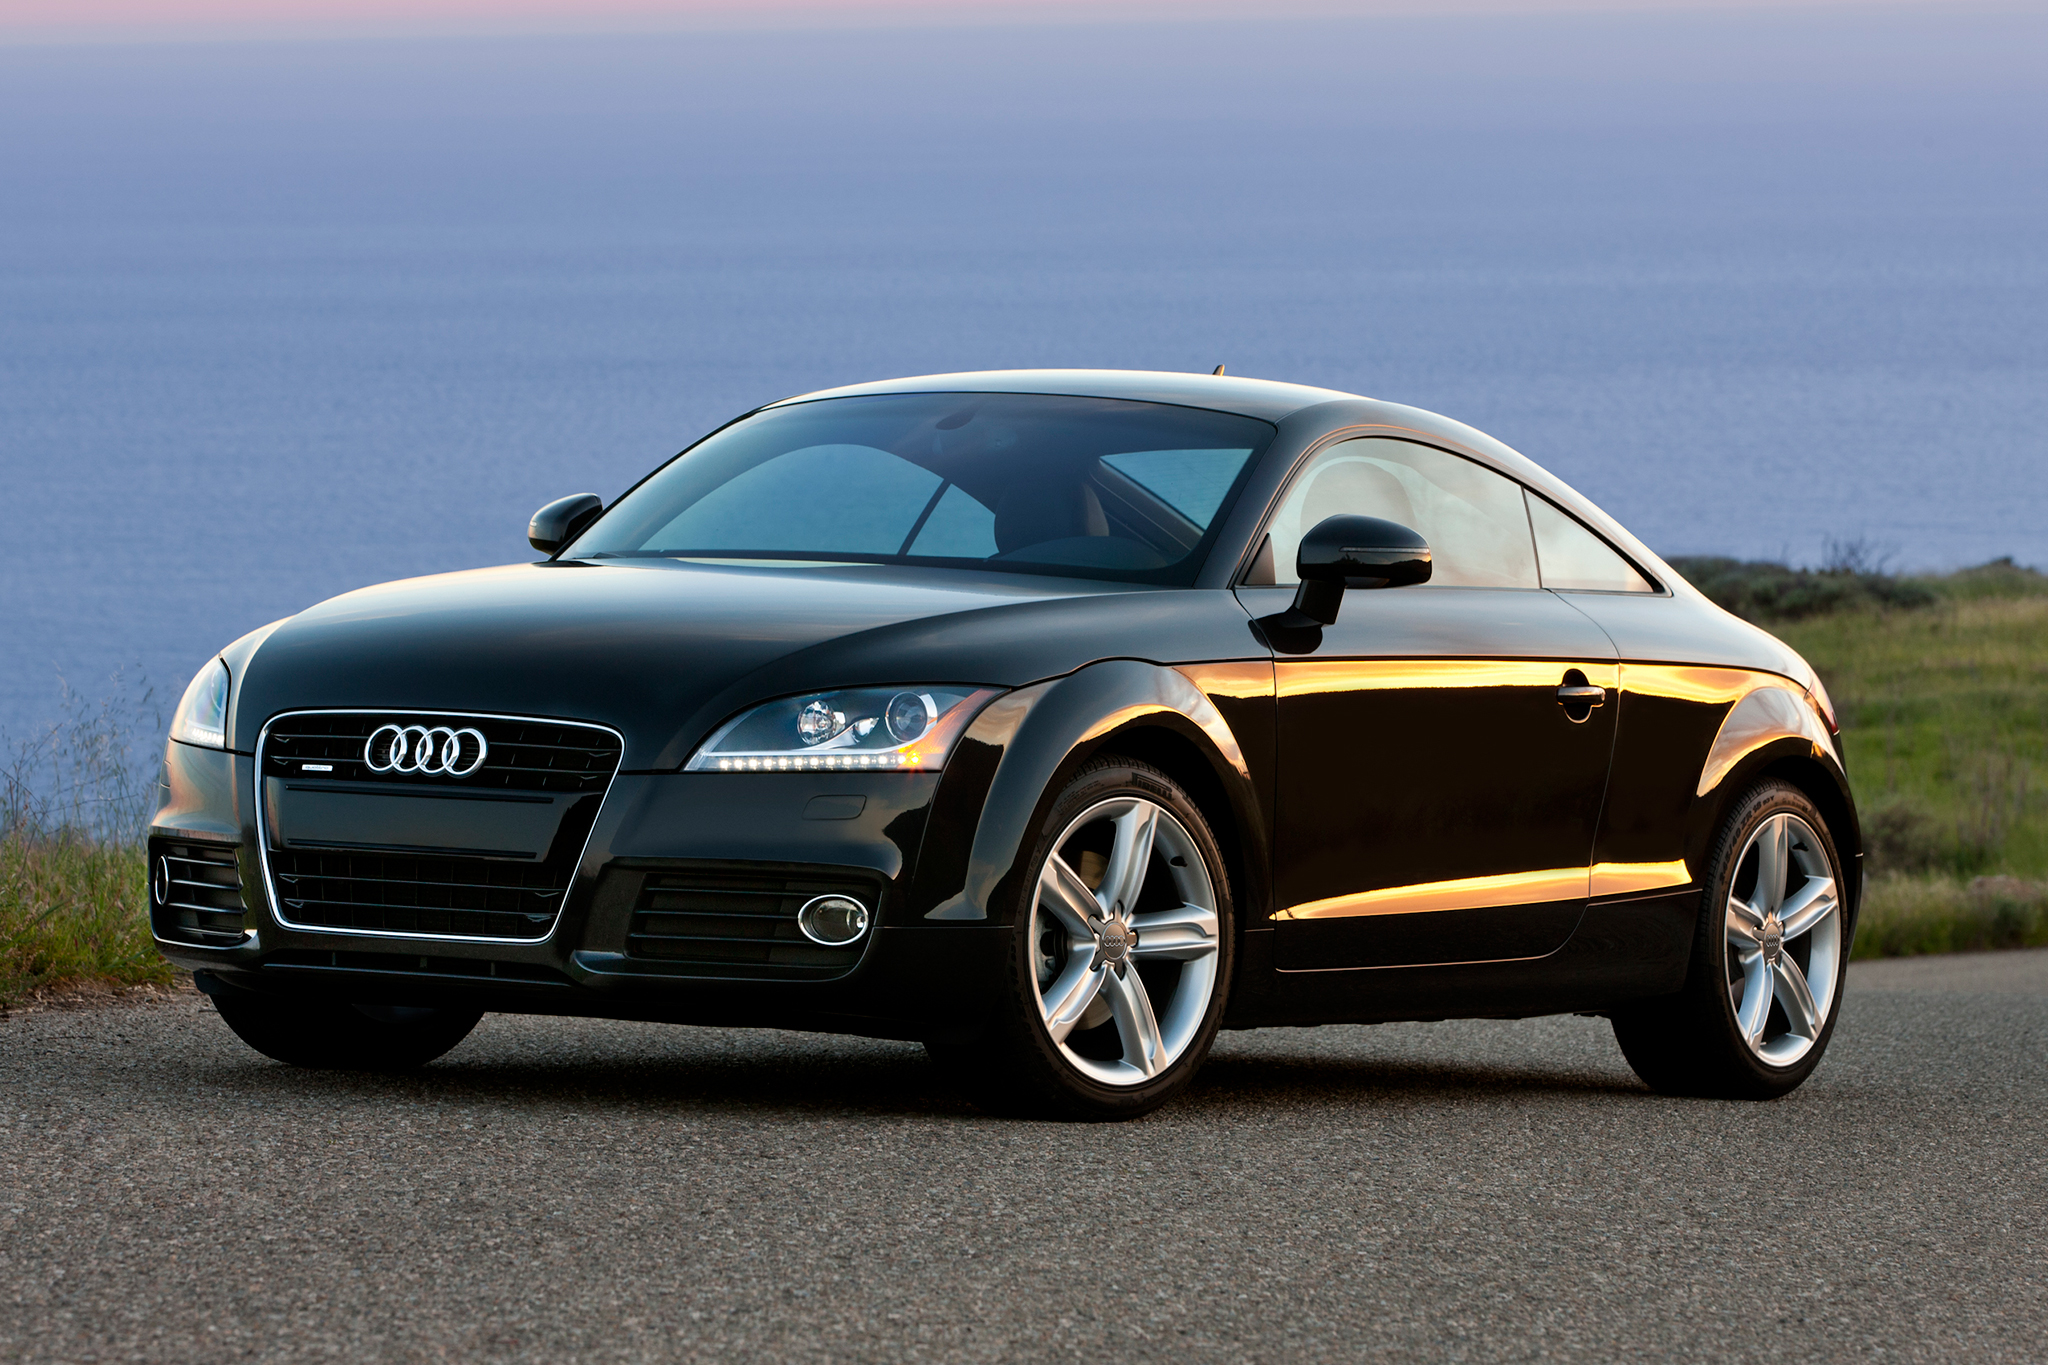 2014-audi-tt-three-quarters-view-2